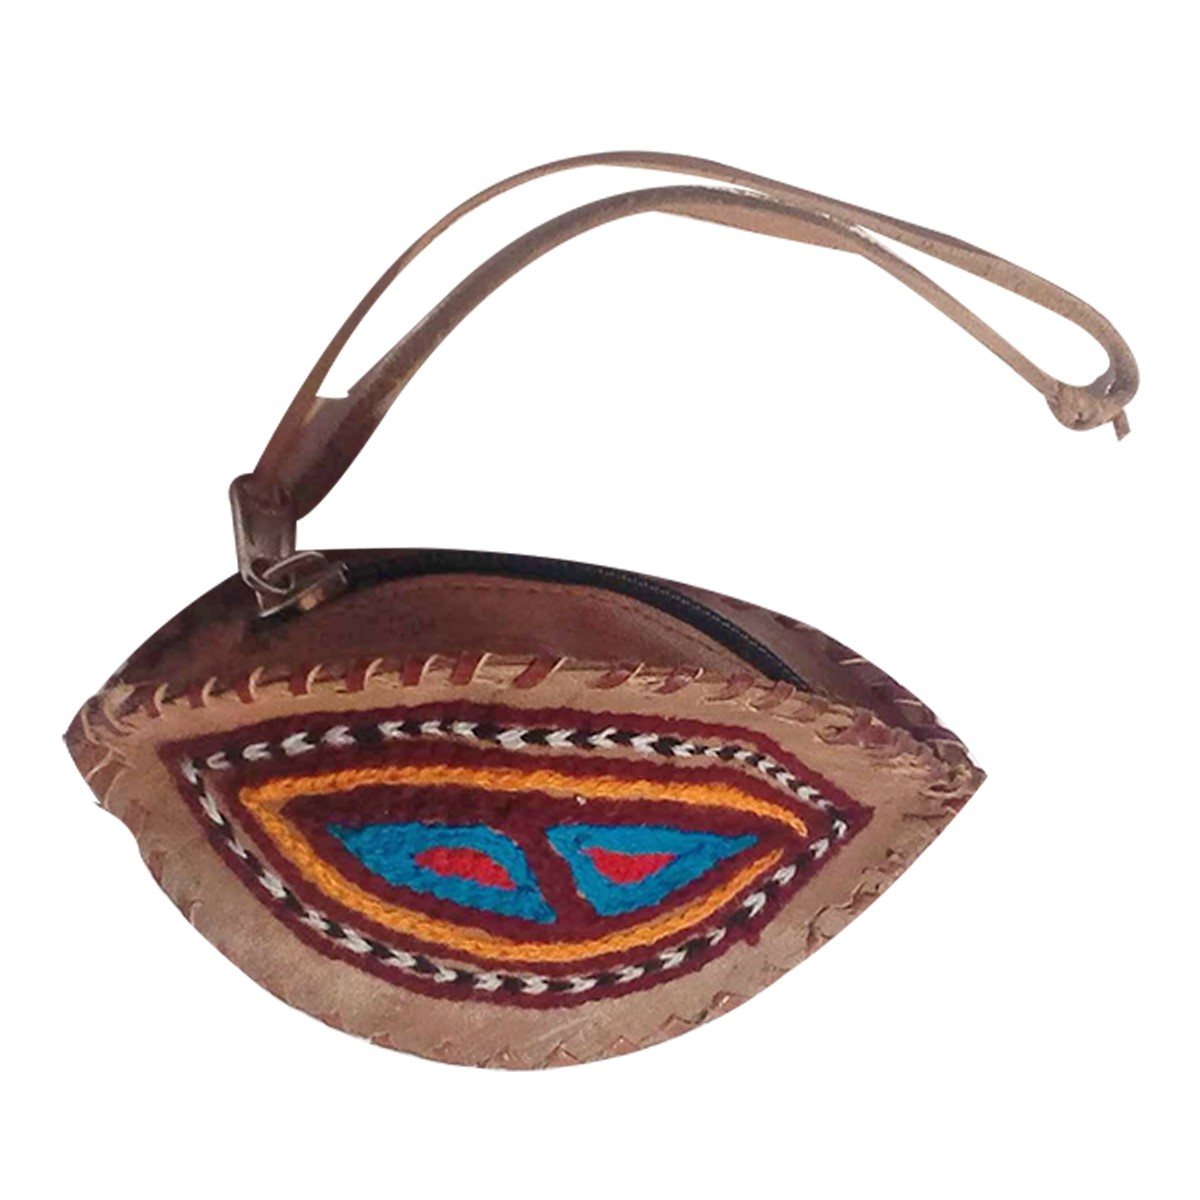 Handmade Brown Genuine Leather Vintage Coin Pouch by Rural Artisans